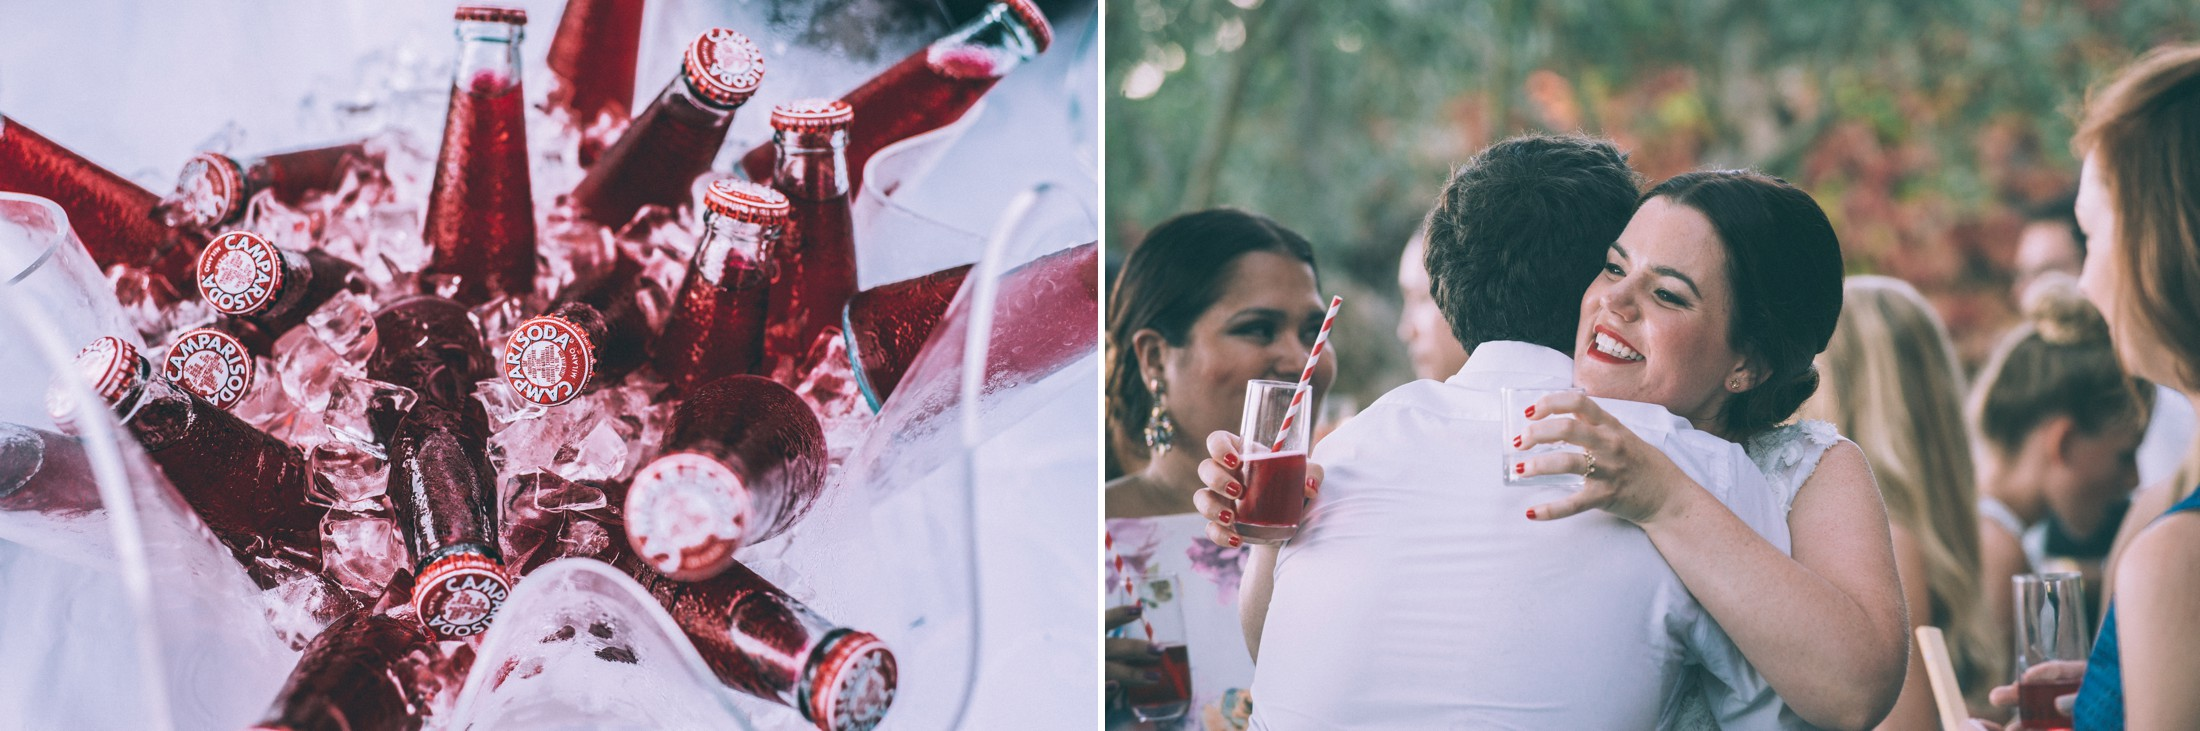 rustic wedding in ravello collage campari bottles and wedding guests